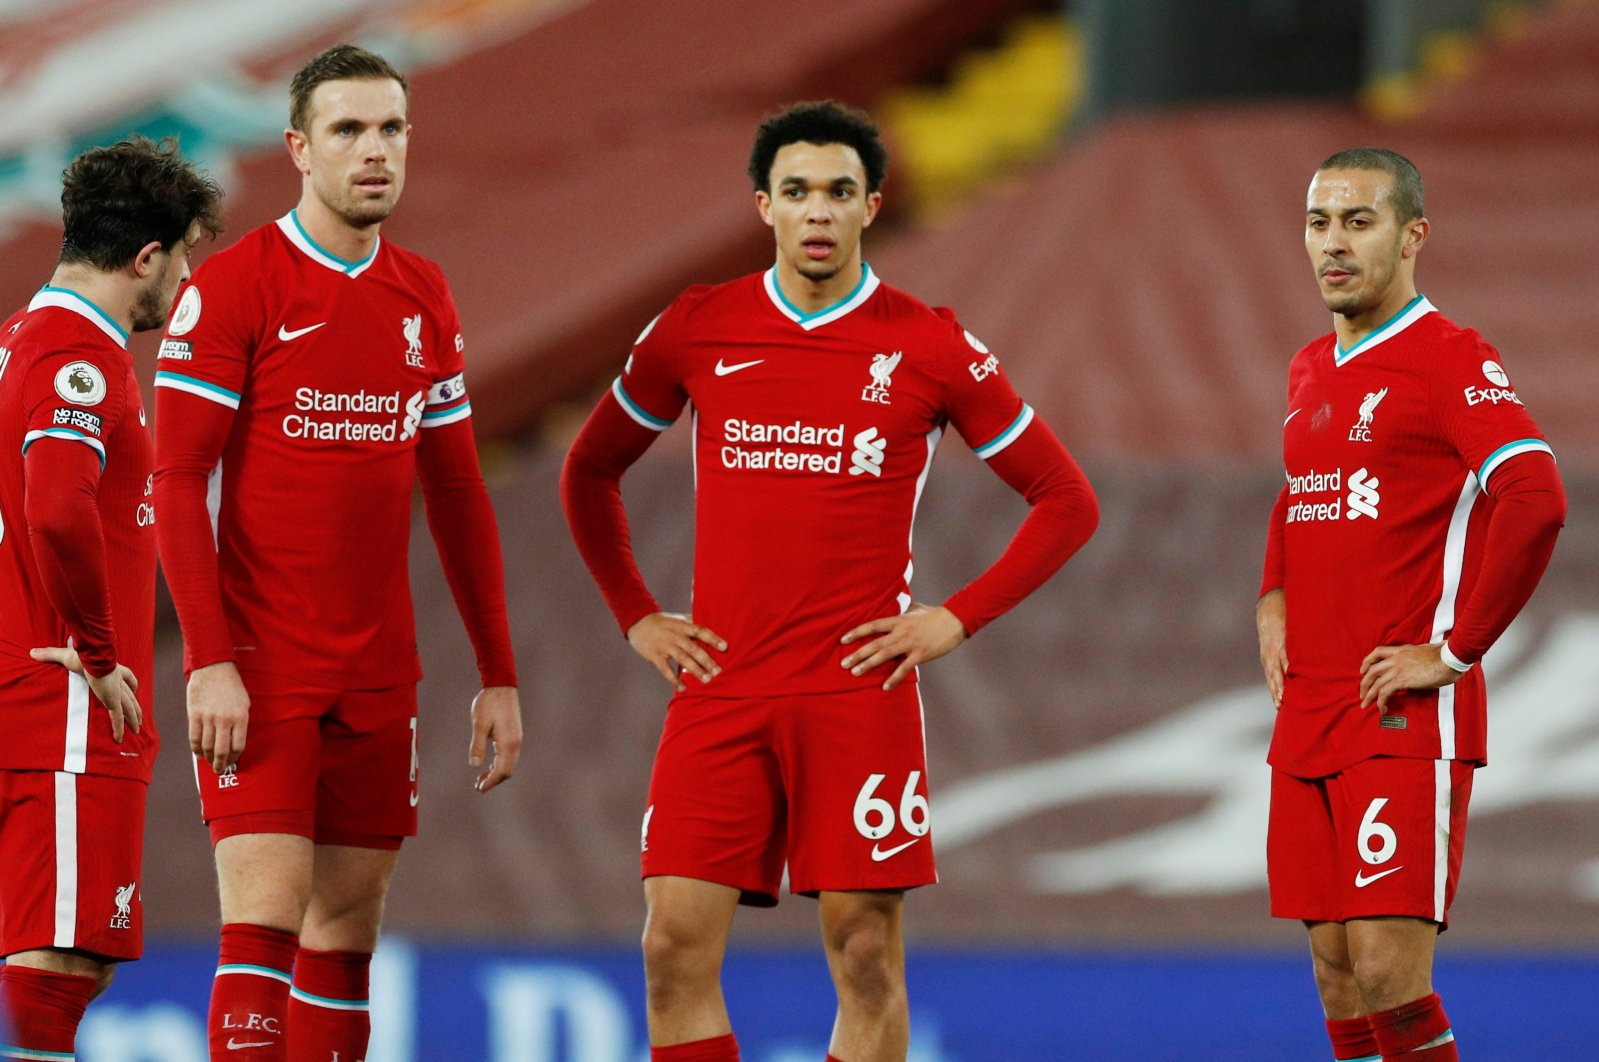 Liverpool players look dejected during a Premier League match against Brighton & Hove Albion at the Anfield stadium, in Liverpool, Britain, Feb. 3, 2021. (Reuters Photo)